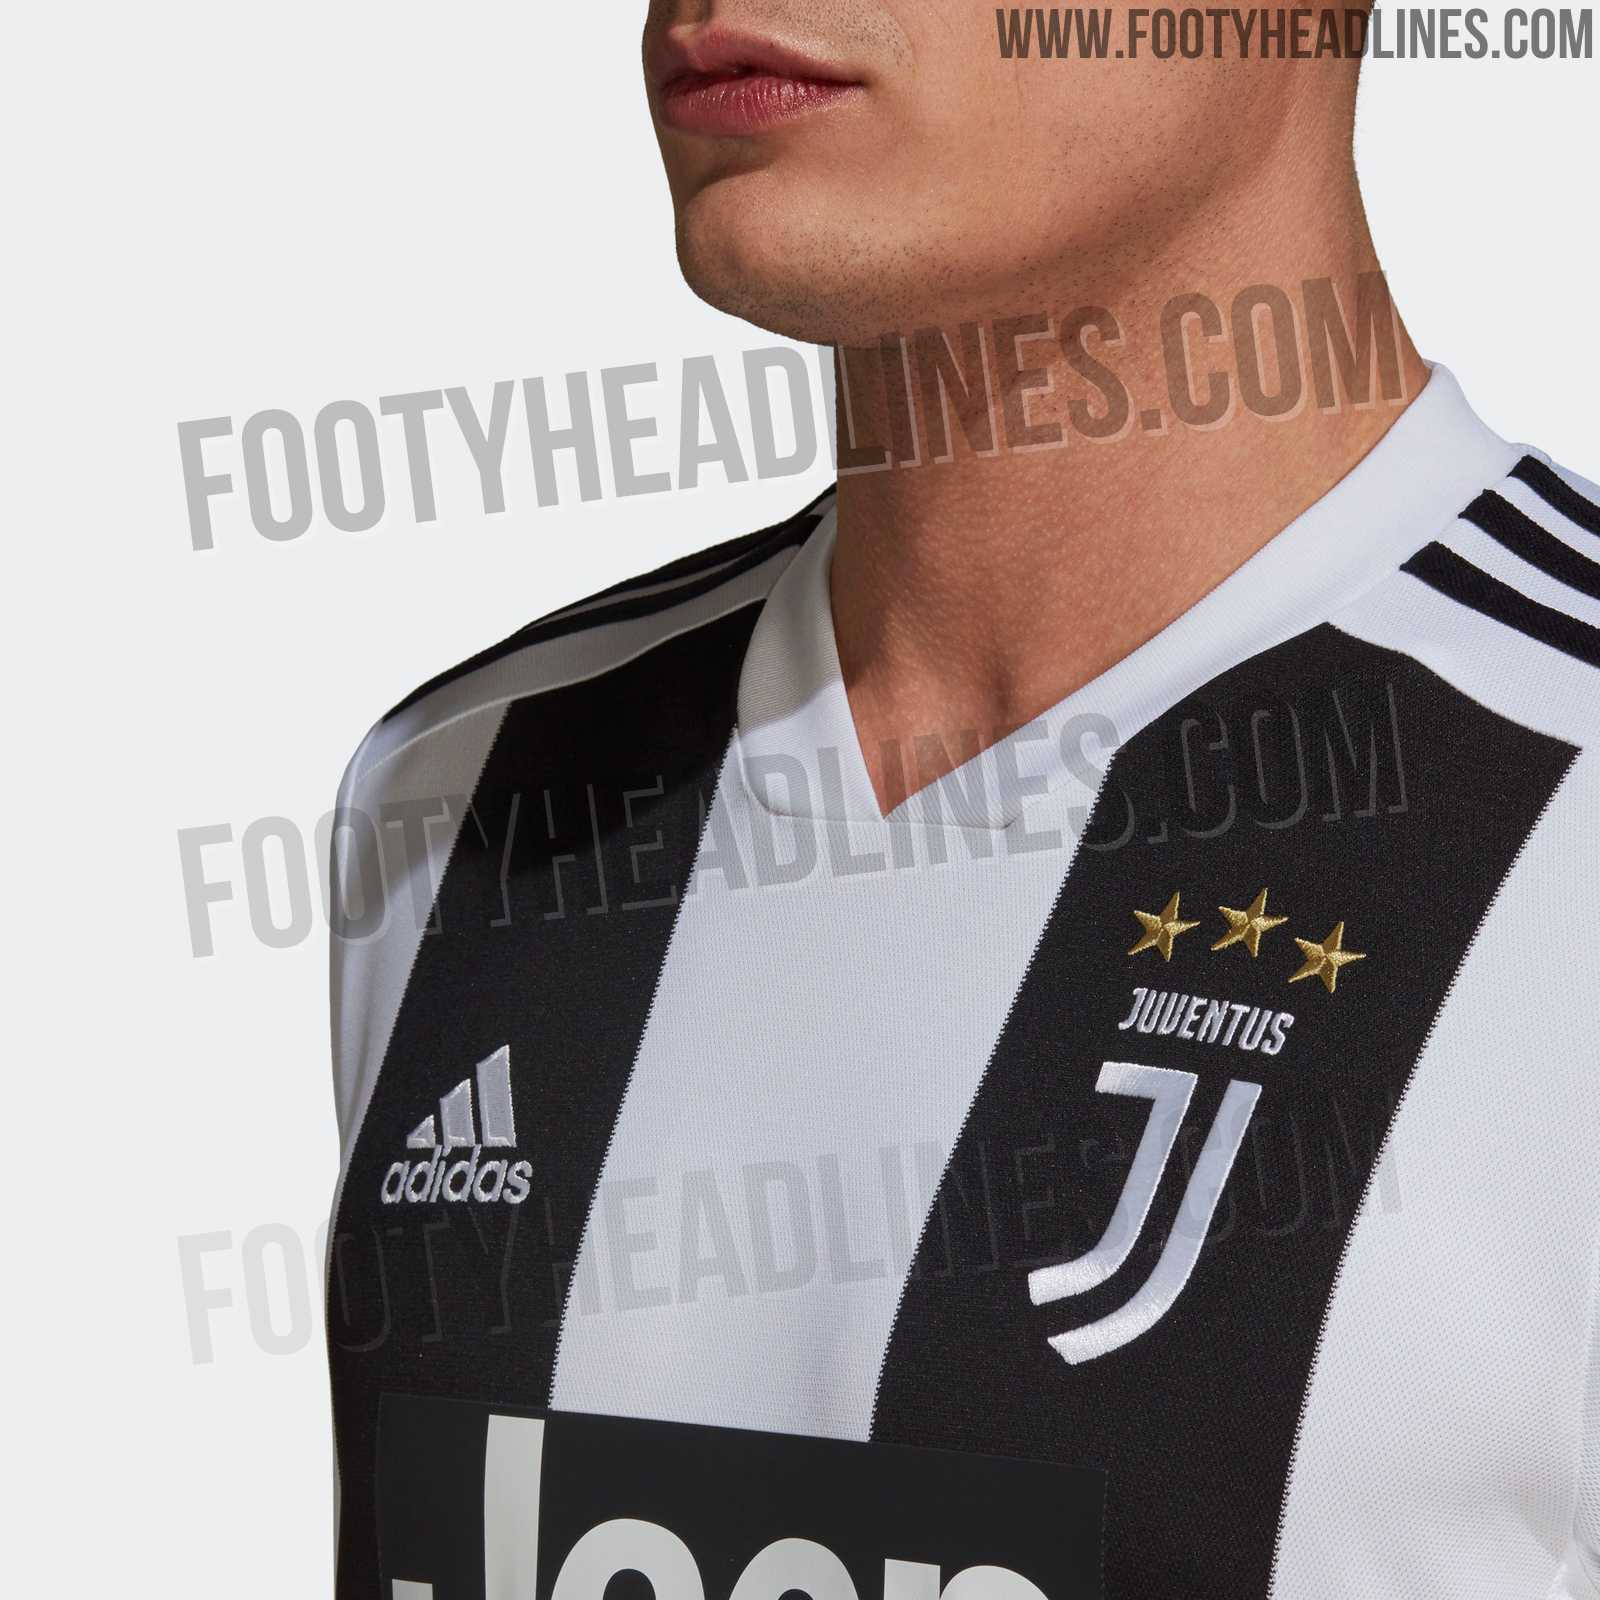 c56a863ca (IMG https   3 .bp.blogspot.com -V6c39o3VHZI WvGSdPcK3ZI AAAAAAABhCE nK2HqAYE Y8LIlQP 8xPyGow5qY3f0RSQCLcBGAs s1600  juventus-18-19-home-kit-2.jpg)